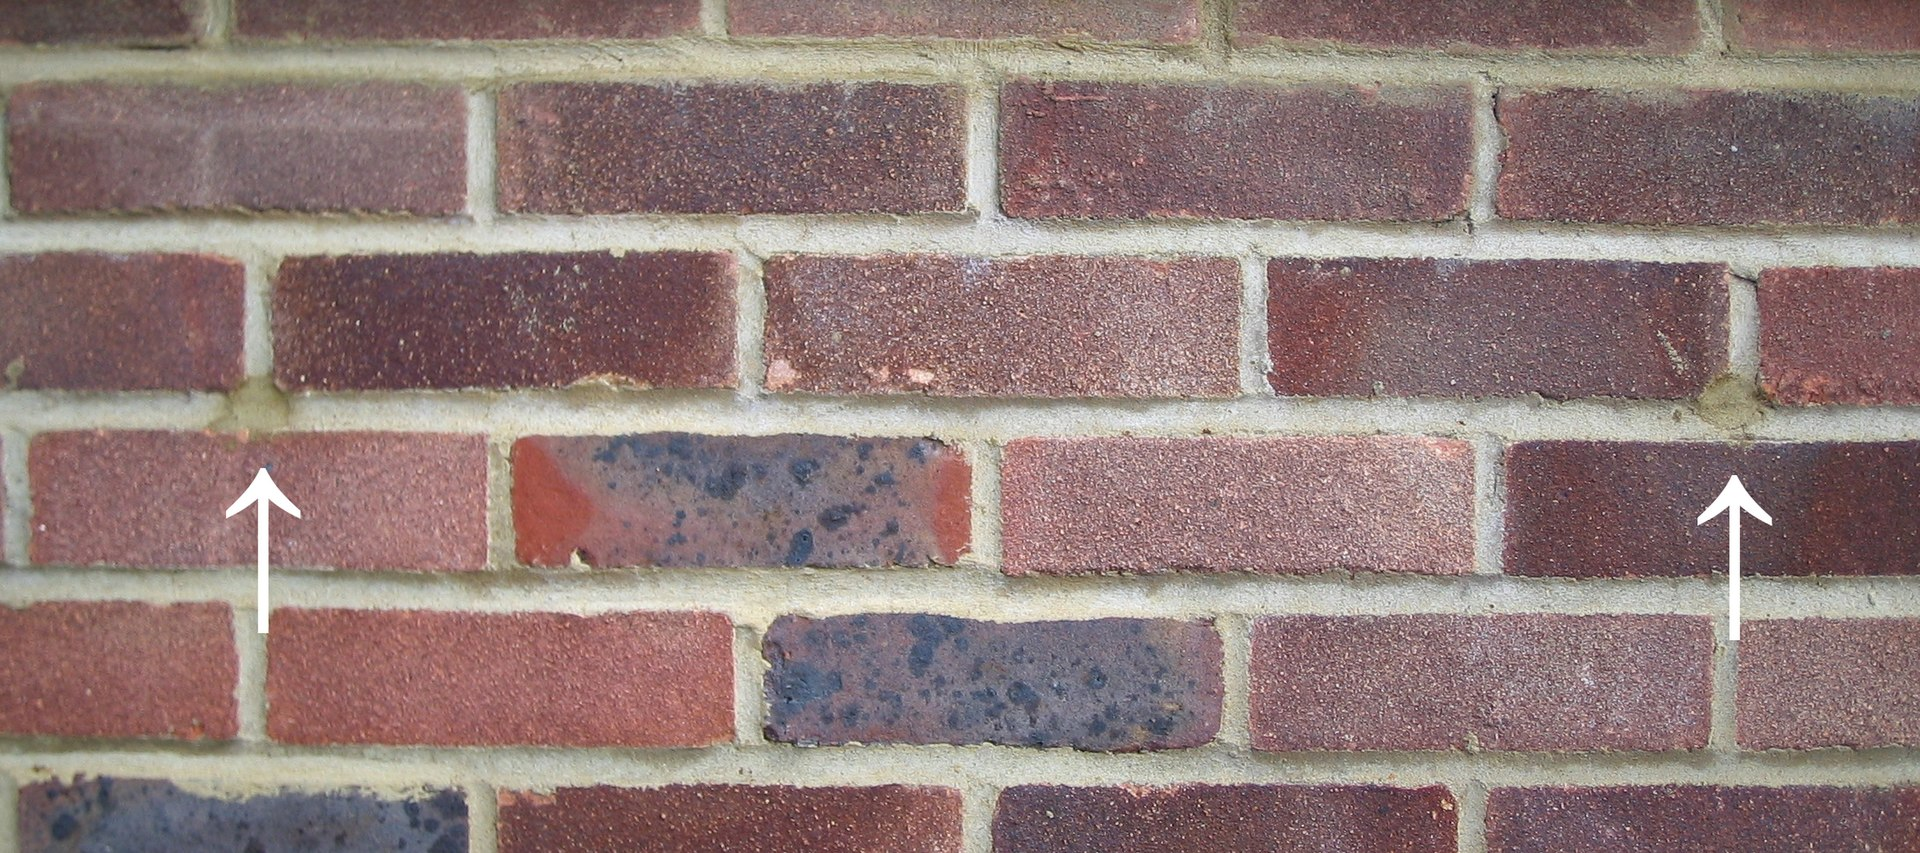 Cavity wall insulation wikipedia for Blown mineral wool cavity insulation